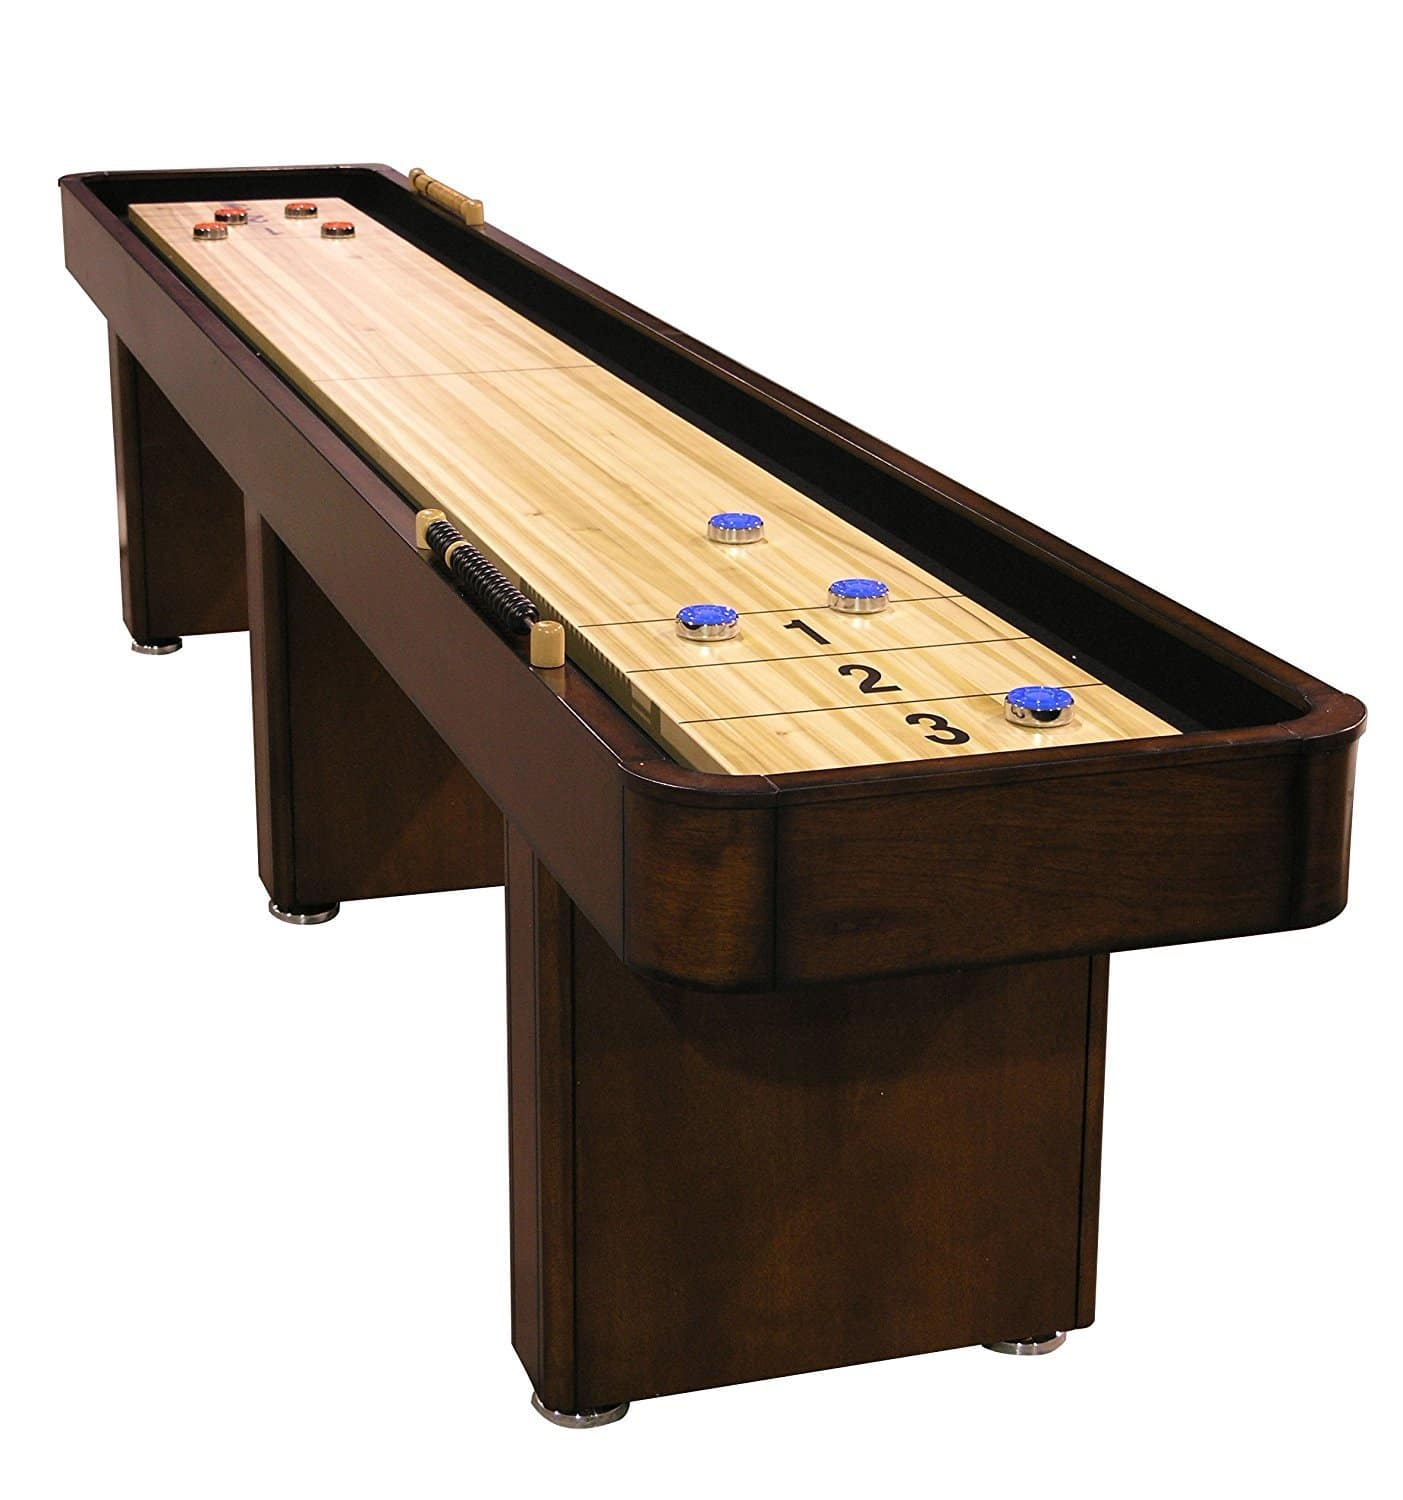 Fairview Game Rooms 12' Shuffleboard Table